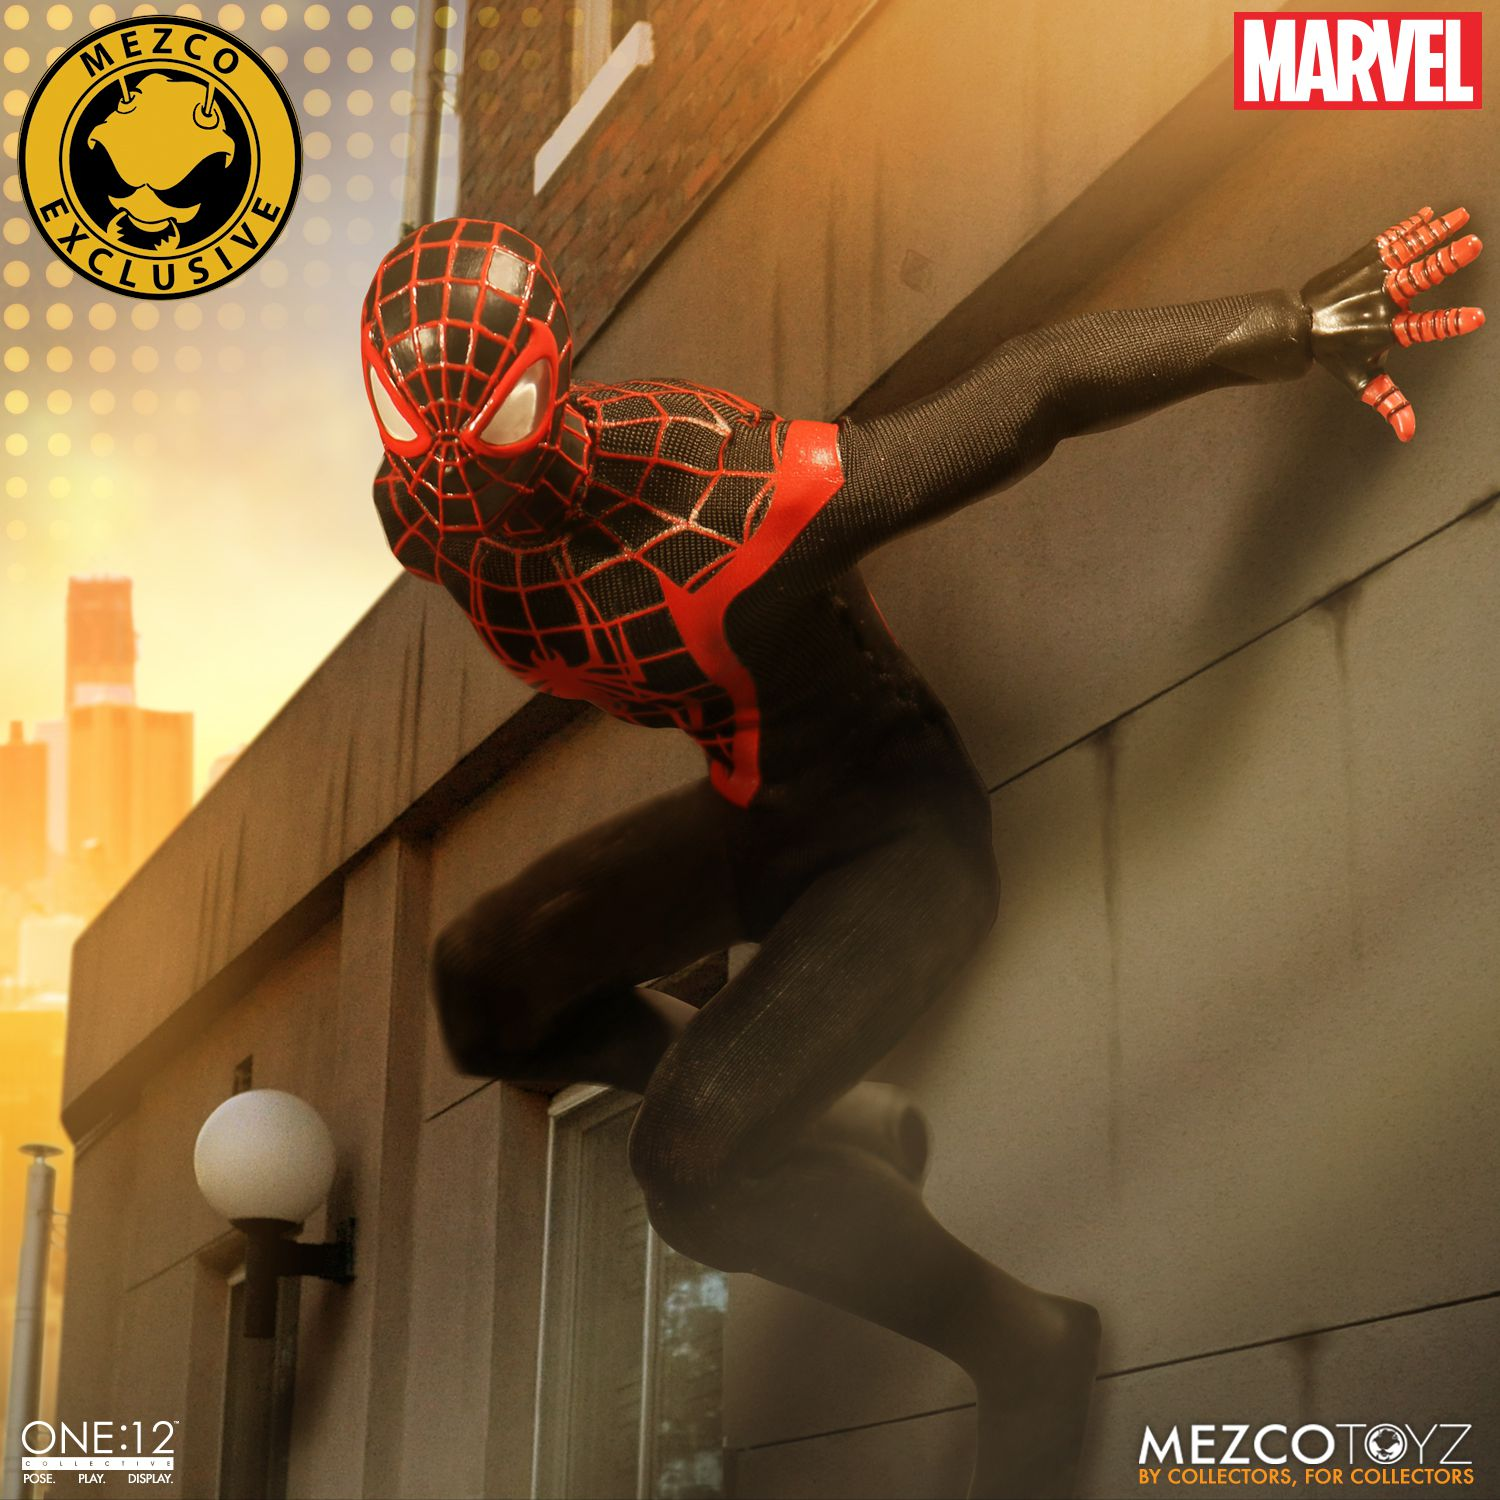 ff7dca89b San Diego Comic-Con 2017 Exclusive Ultimate Spider-Man Miles Morales One12  Collective Marvel